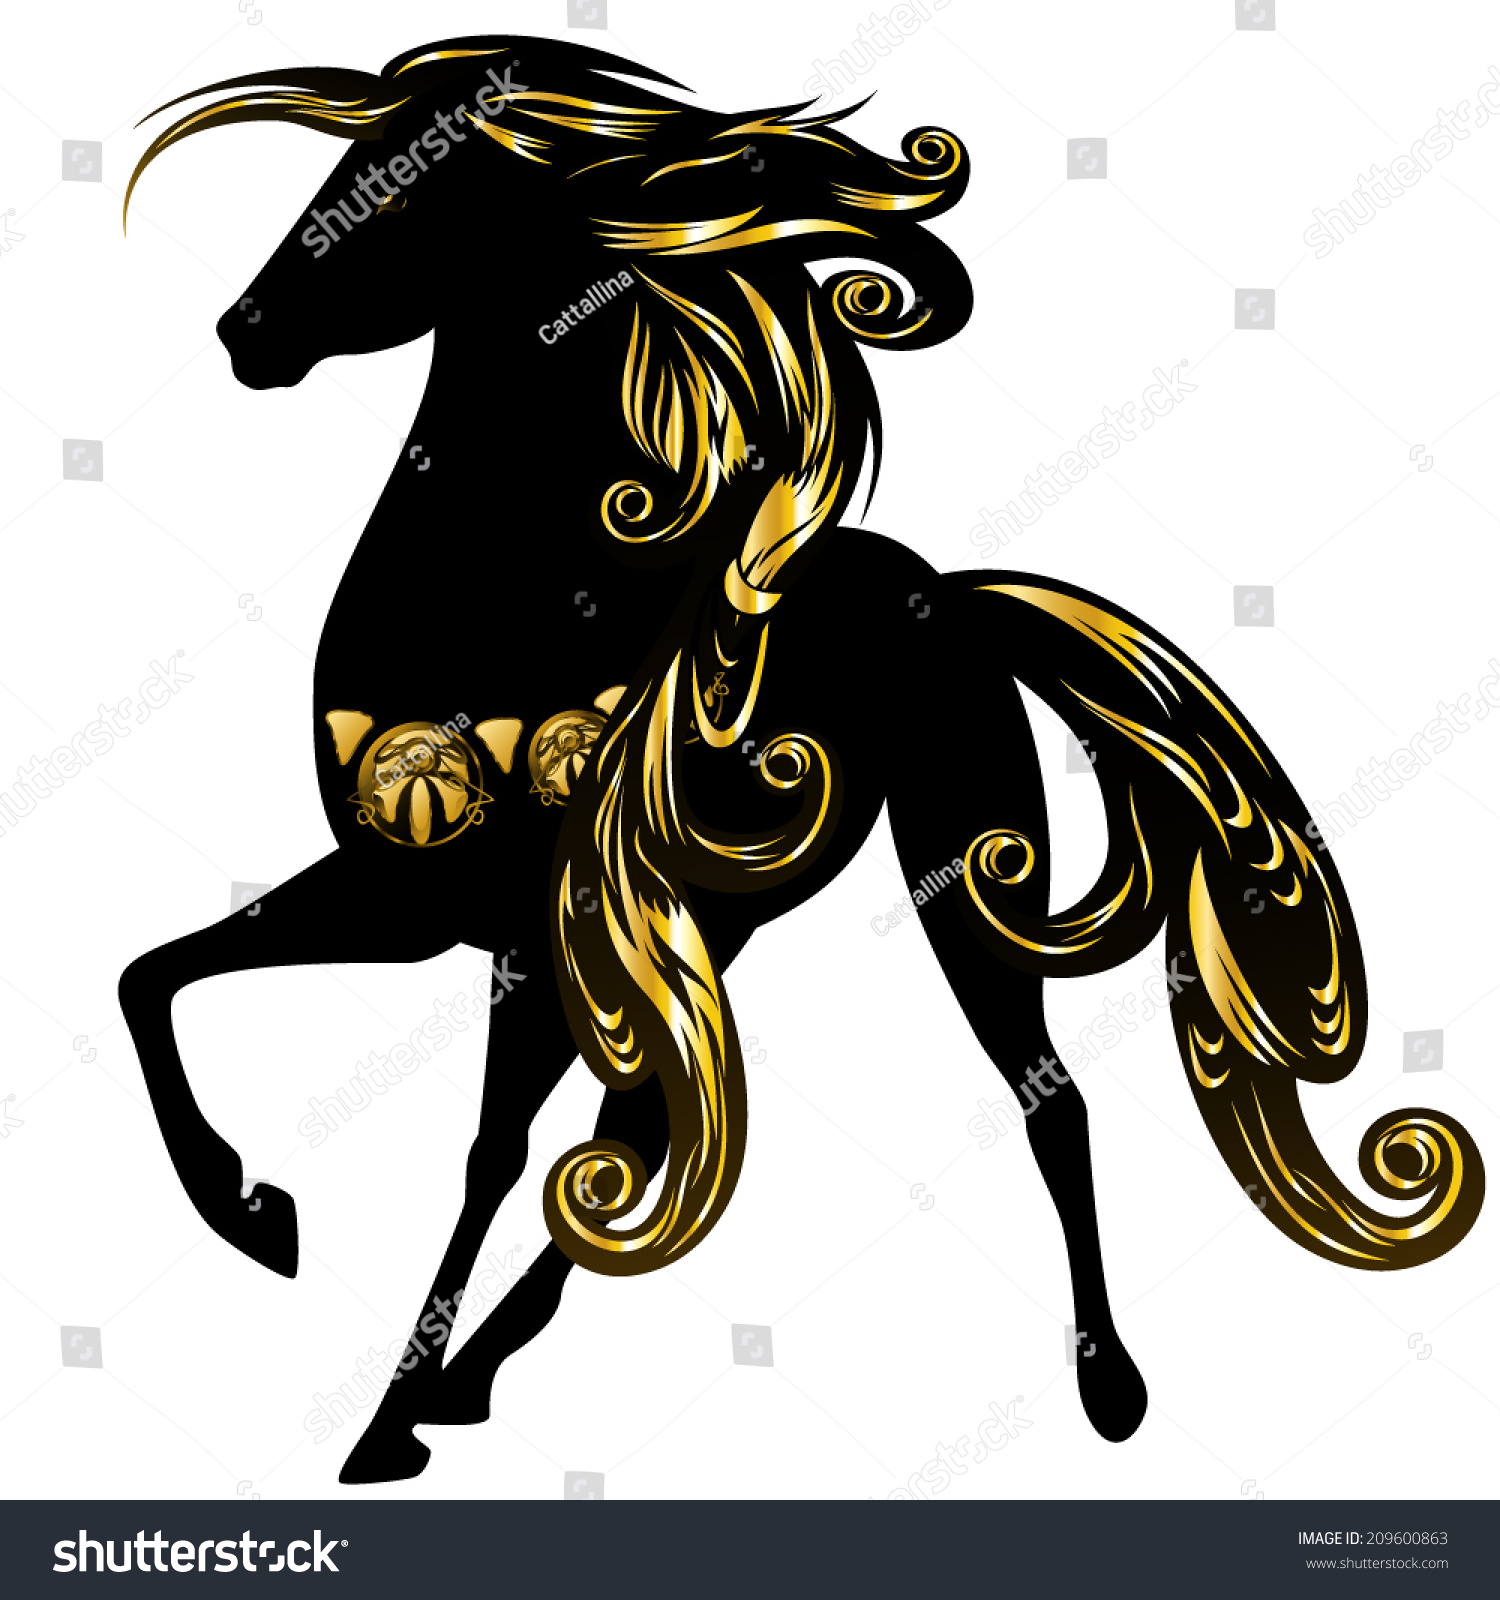 Beautiful Black Horse With Long Ornate Golden Mane - Vector Design - 209600863 : Shutterstock